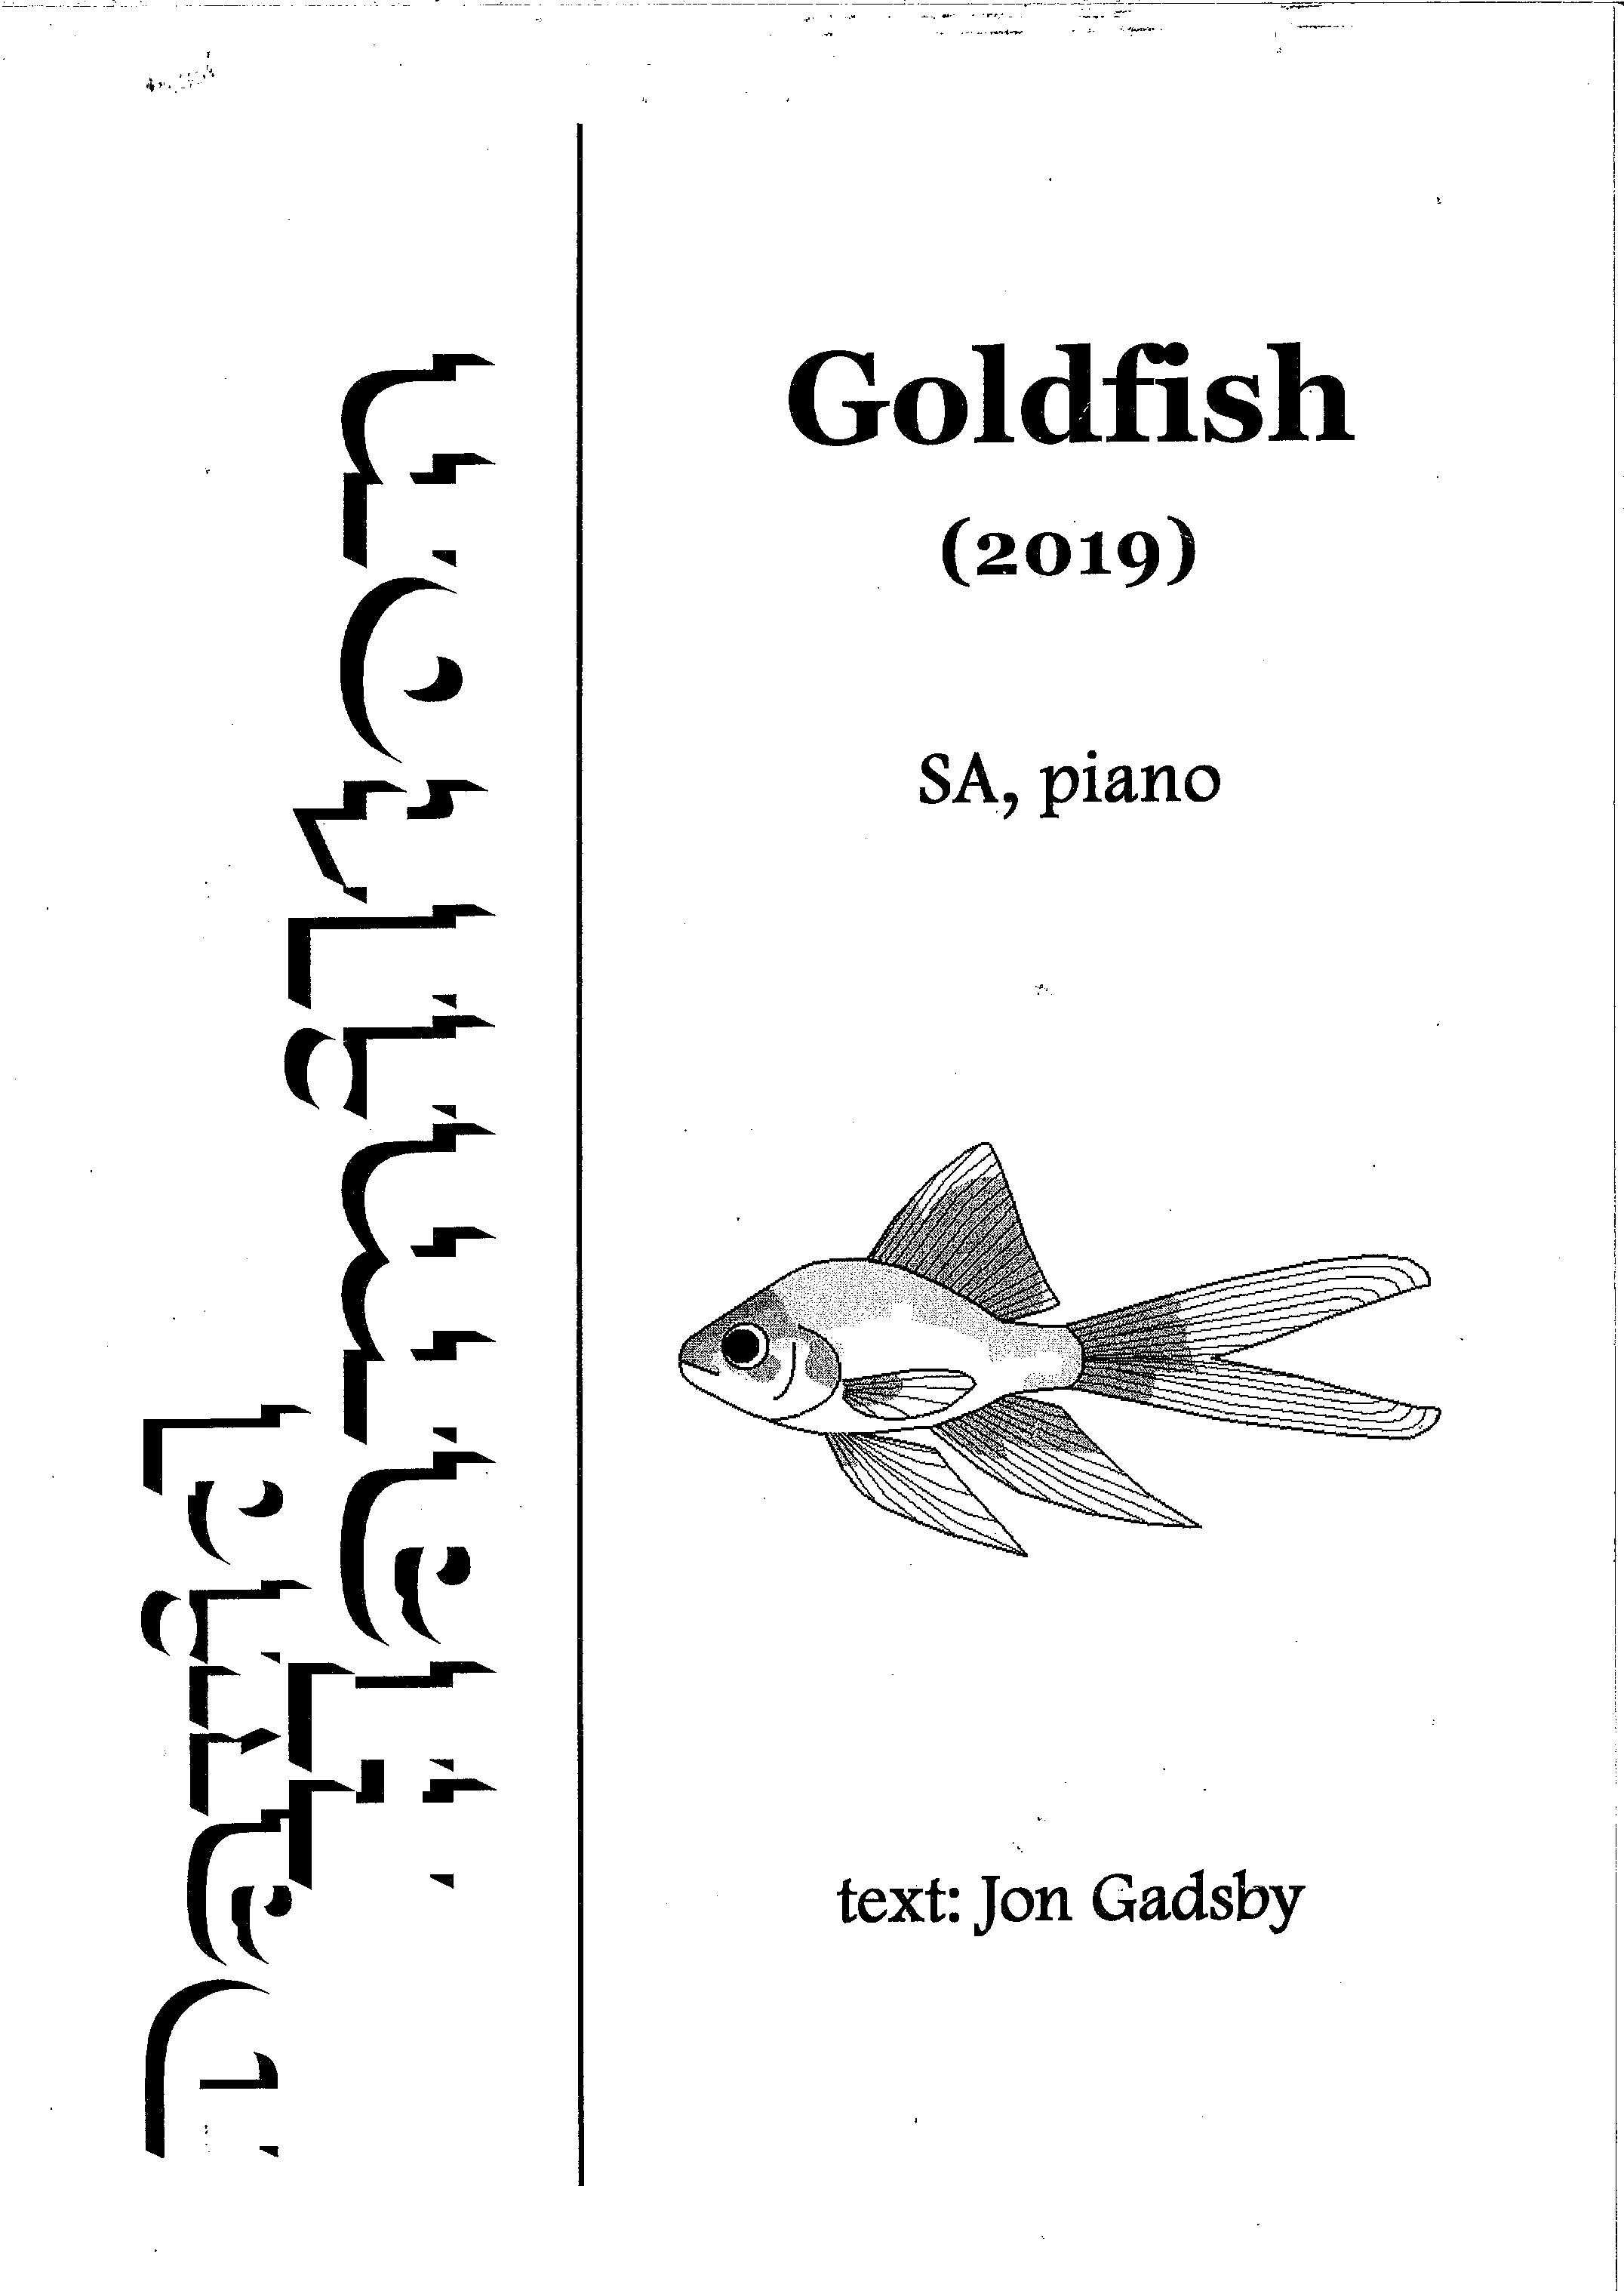 David Hamilton: Goldfish - hardcopy SCORE